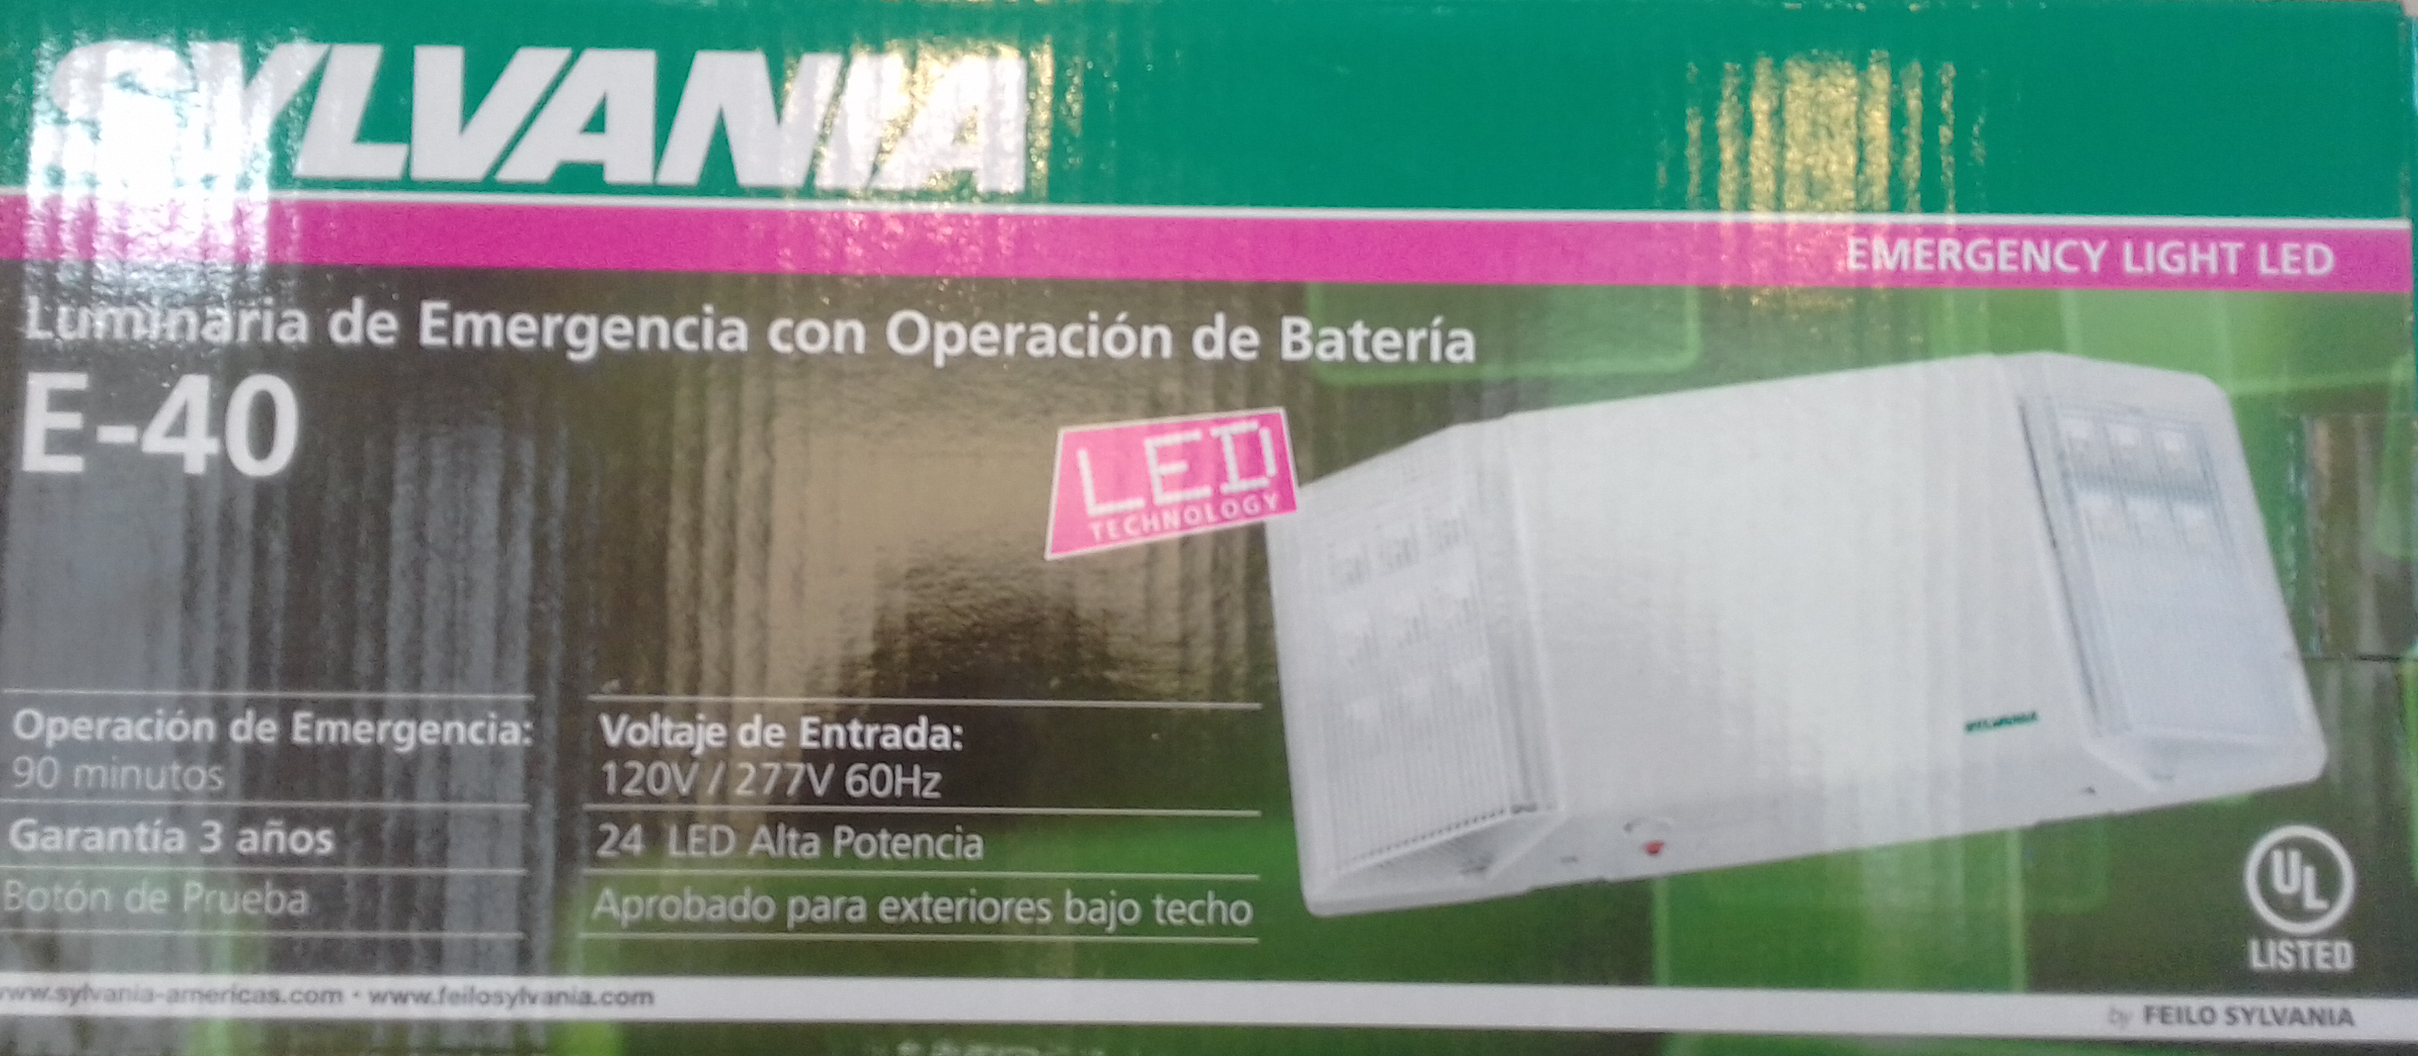 Lampara emergencia sylvania 2 luces LED